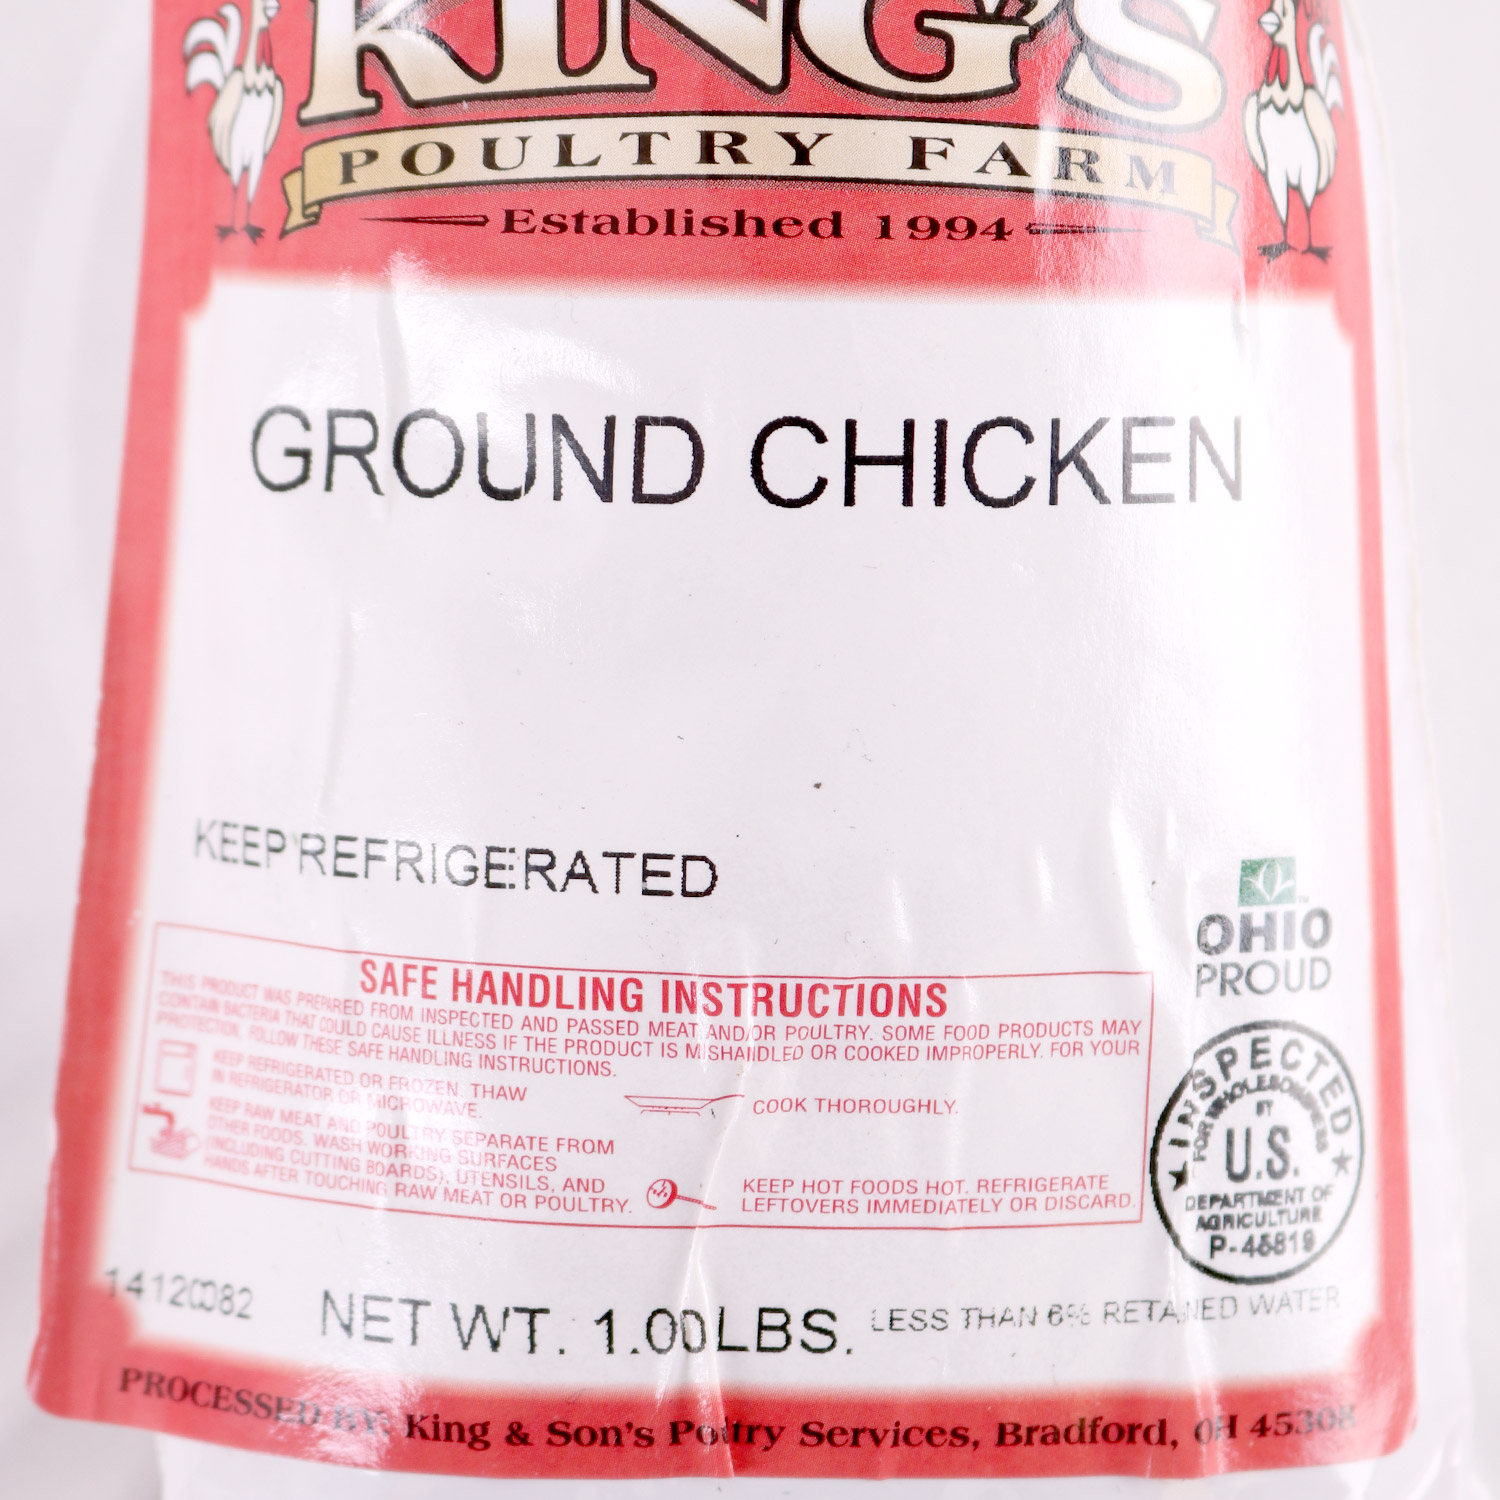 All Natural Chicken, Ground Chicken